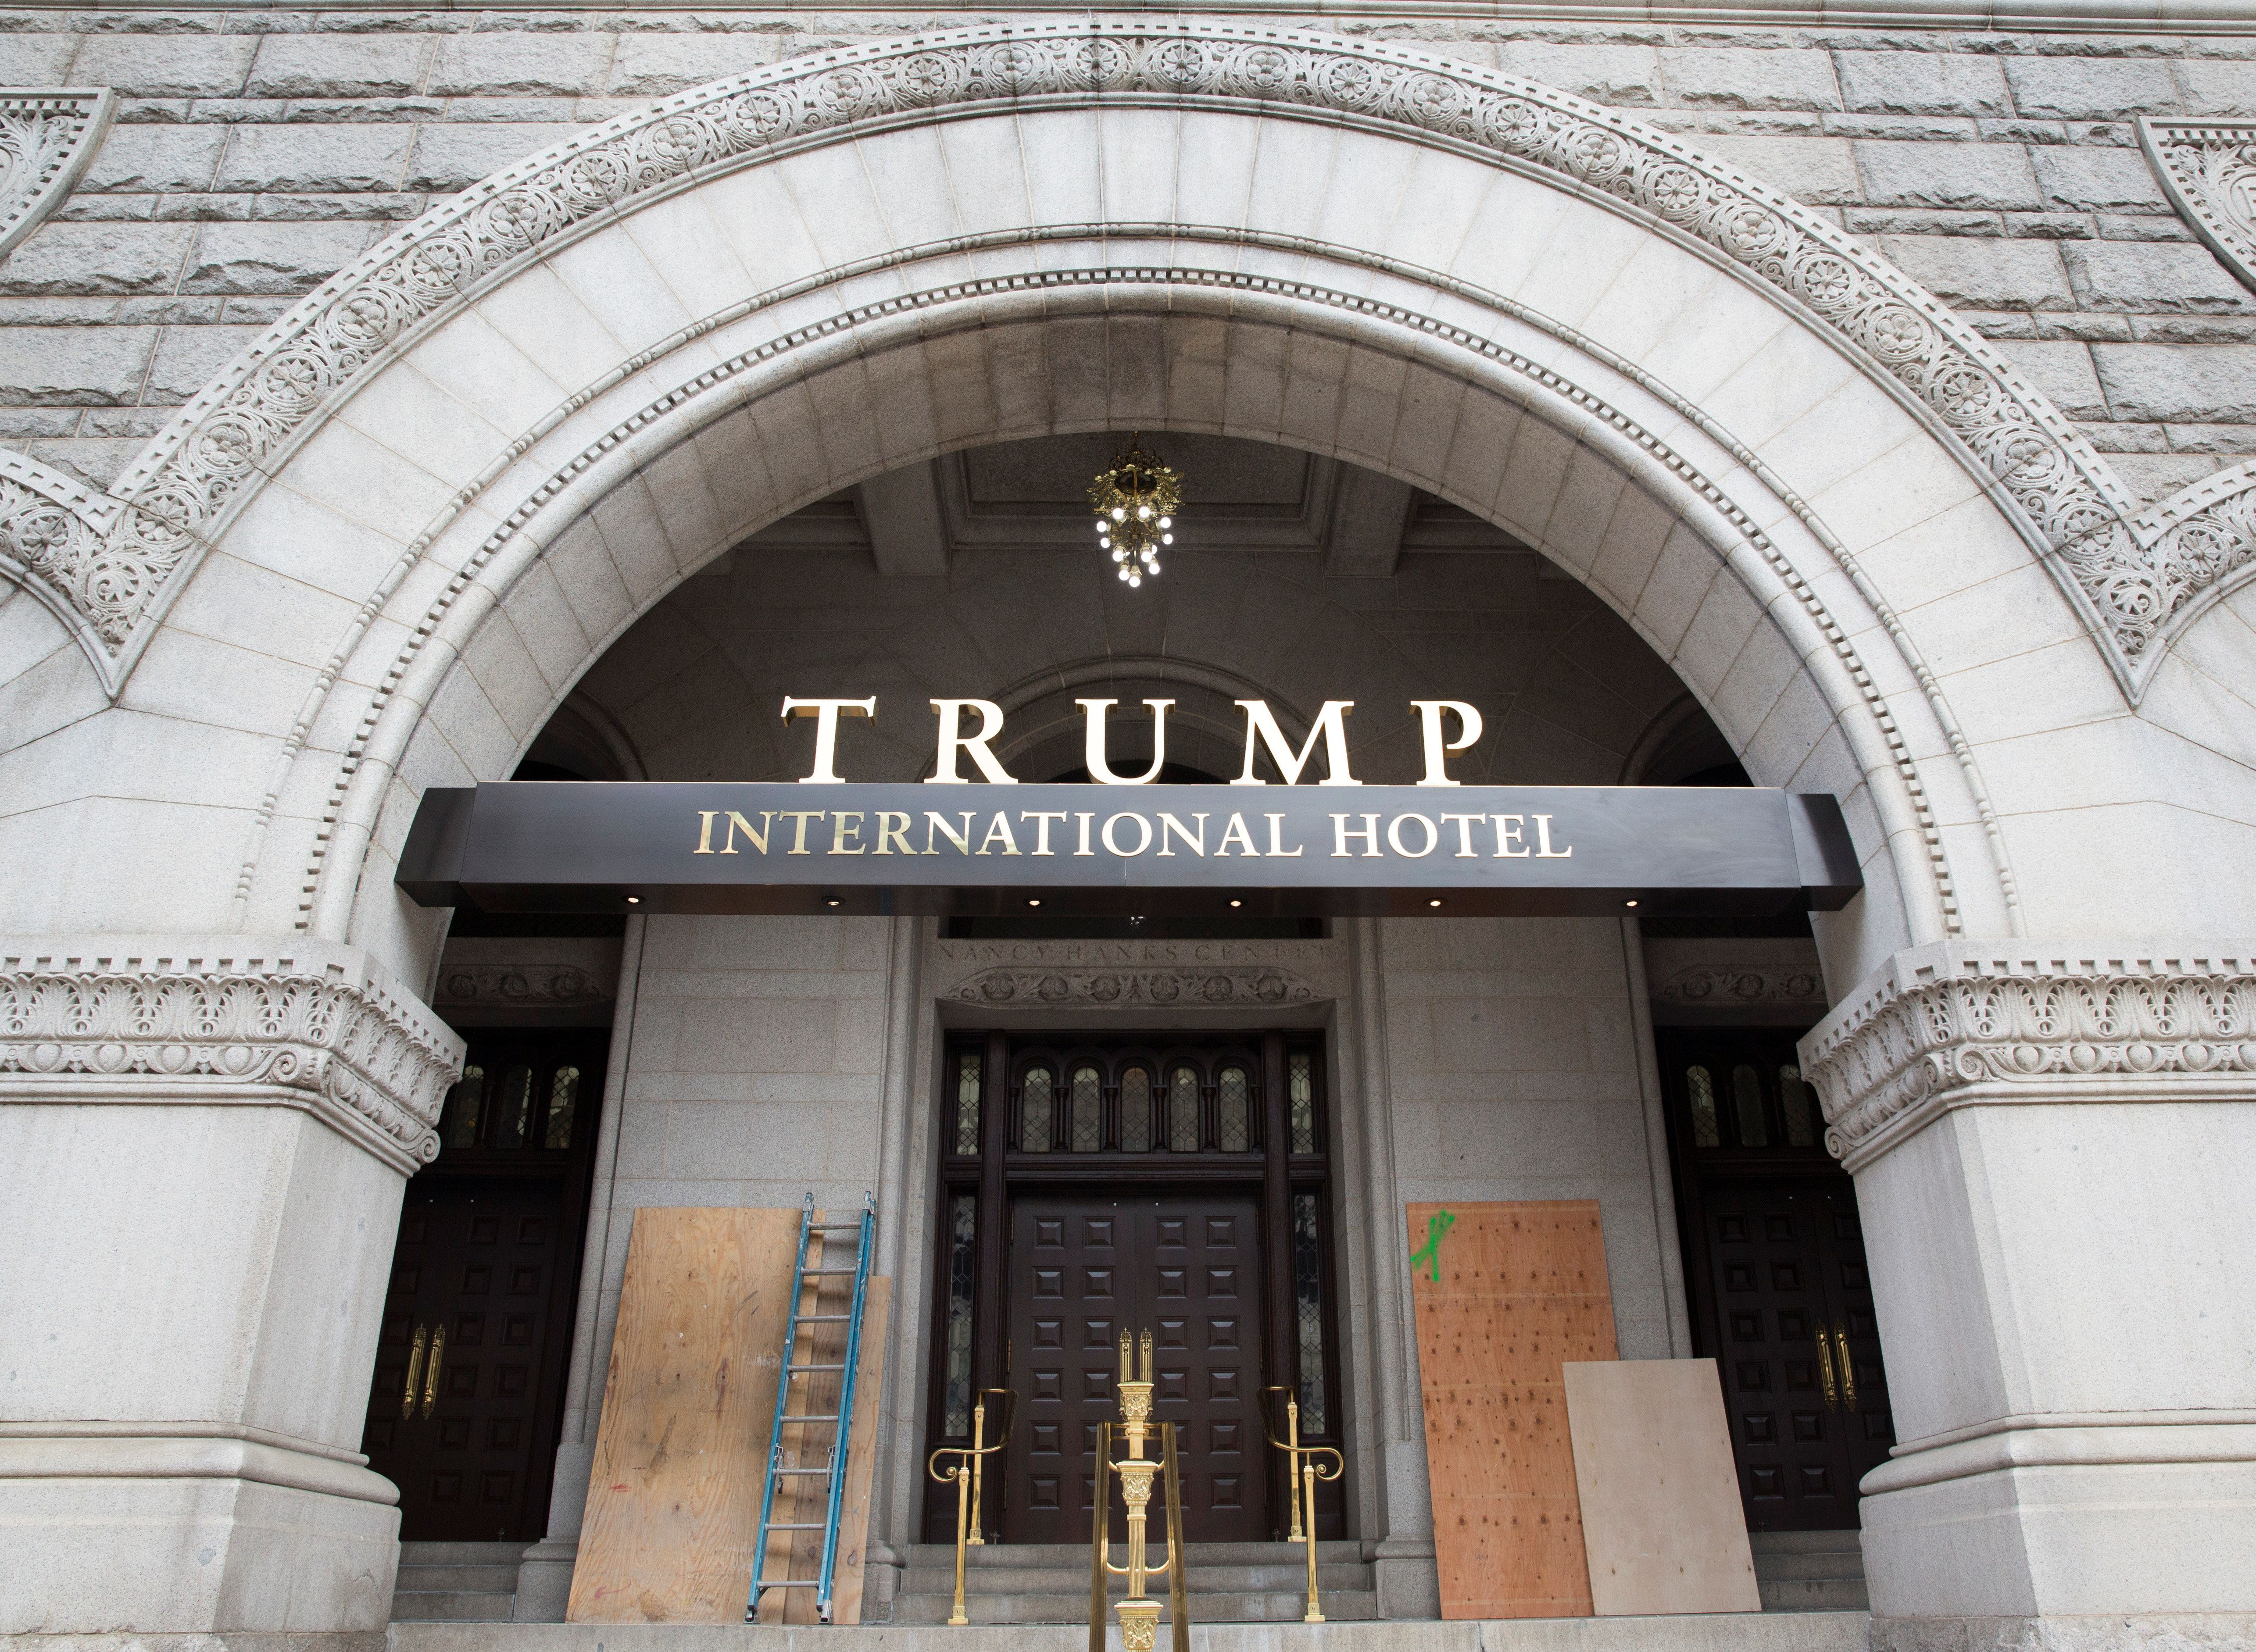 Plywood covers graffiti at an entrance to the Trump International Hotel in Washington, U.S., October 2, 2016.    REUTERS/Joshua Roberts